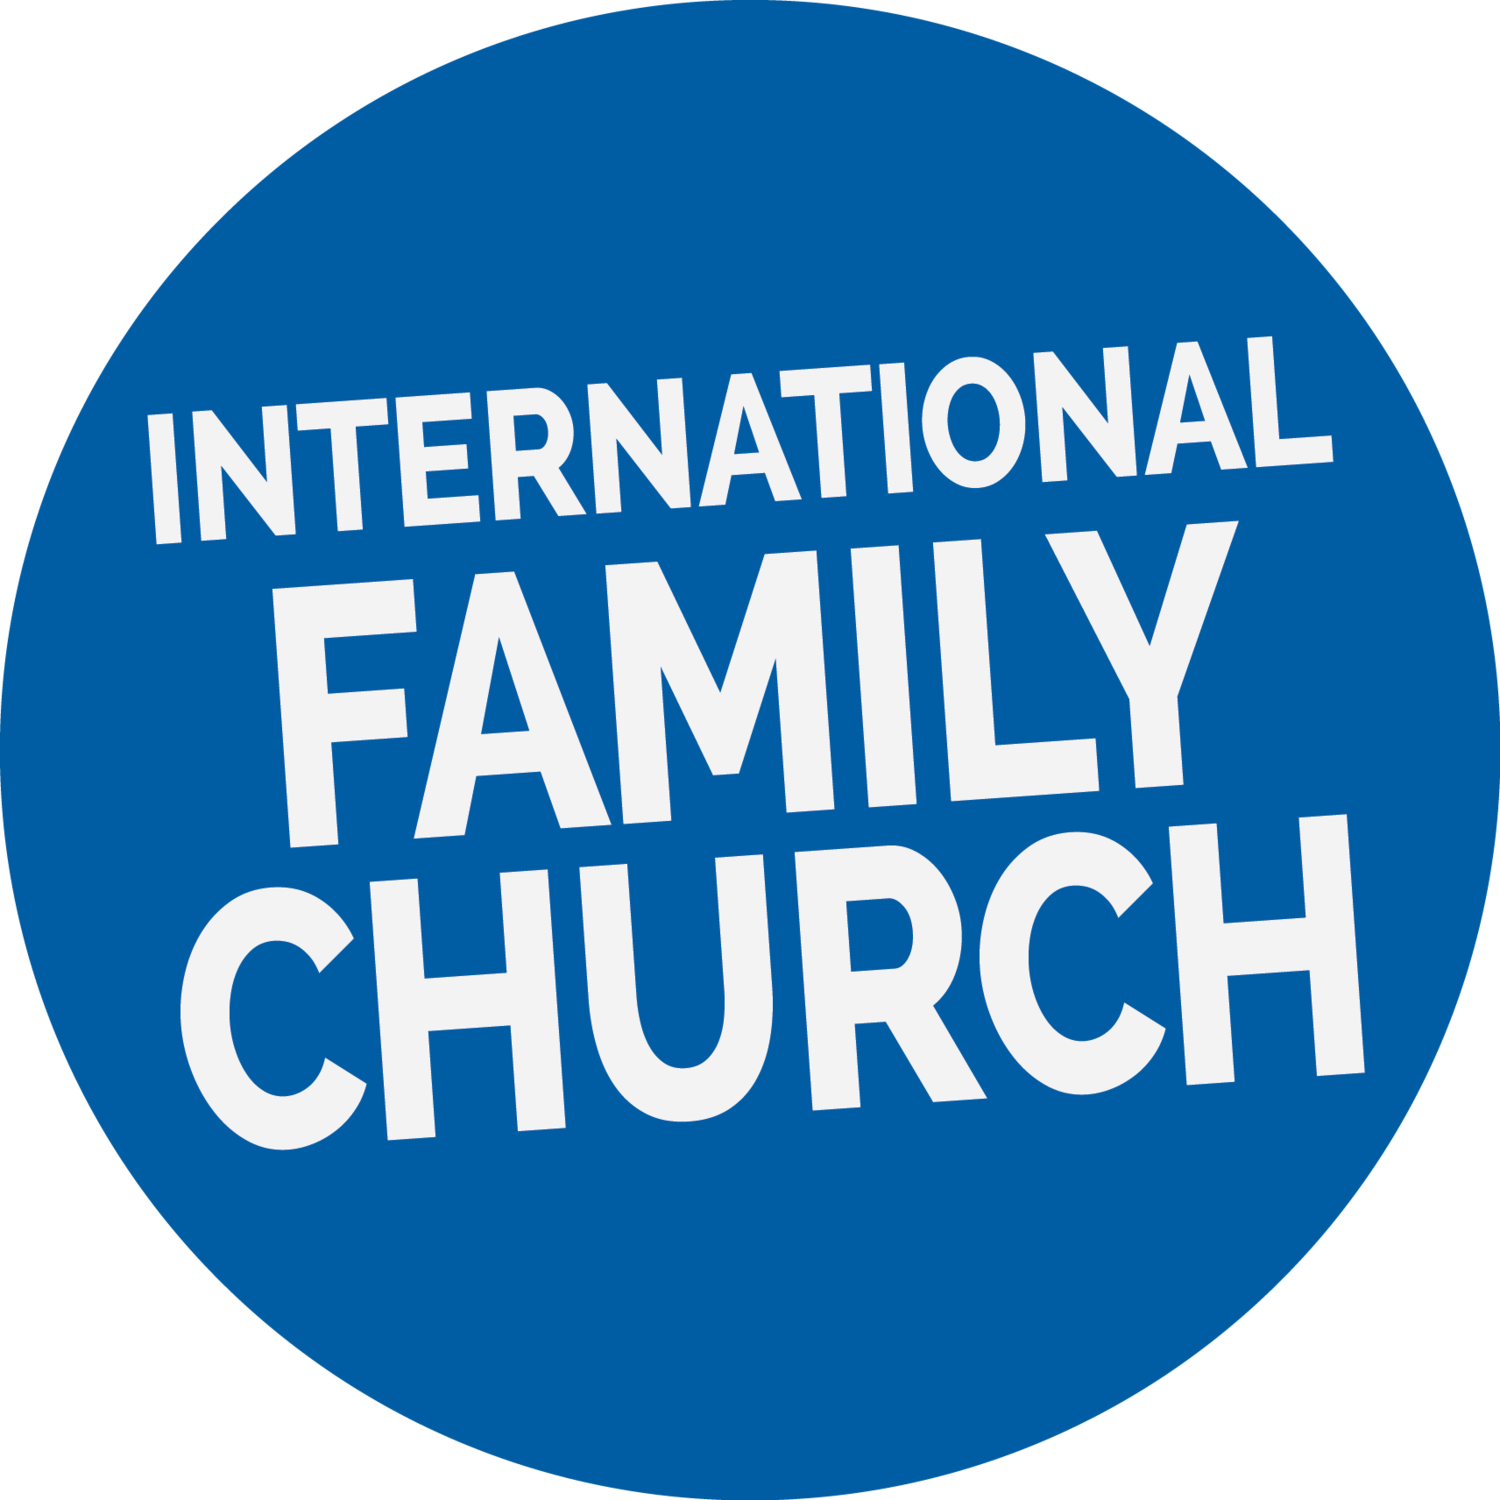 International Family Church